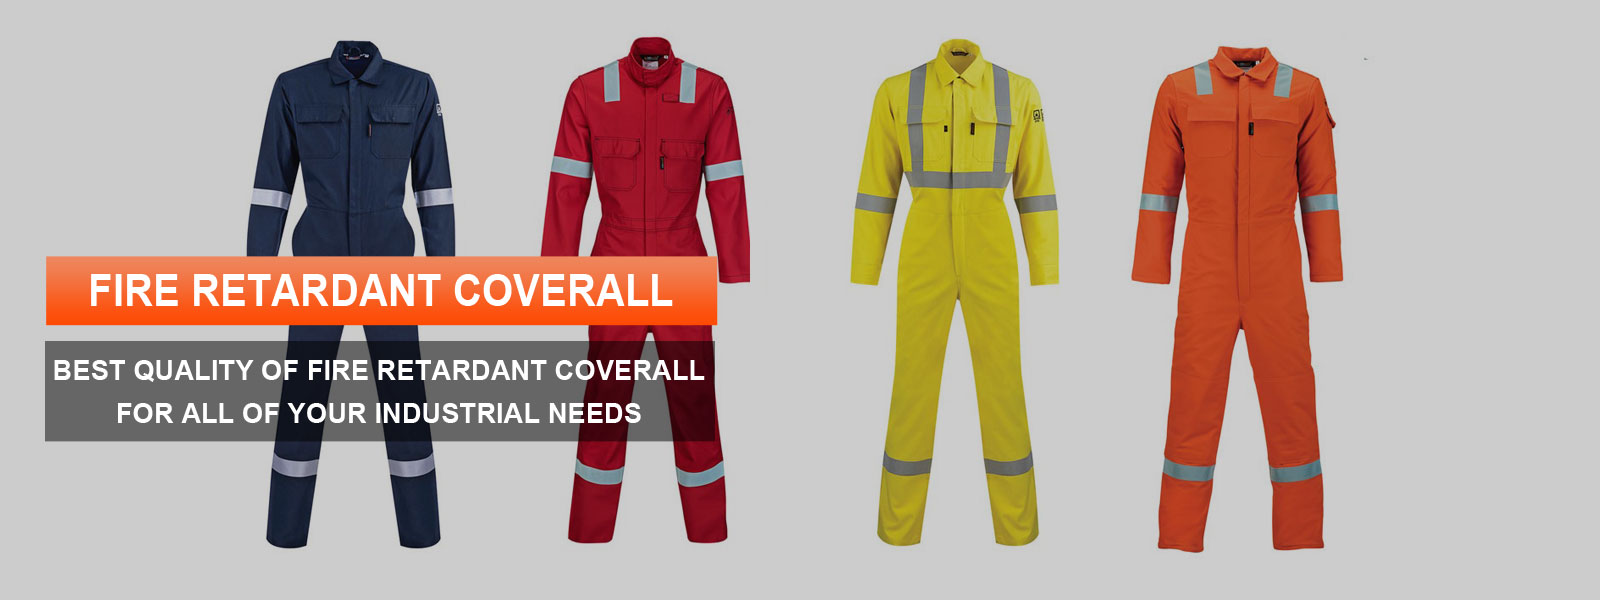 Fire Retardant Coverall Manufacturers in Guadeloupe